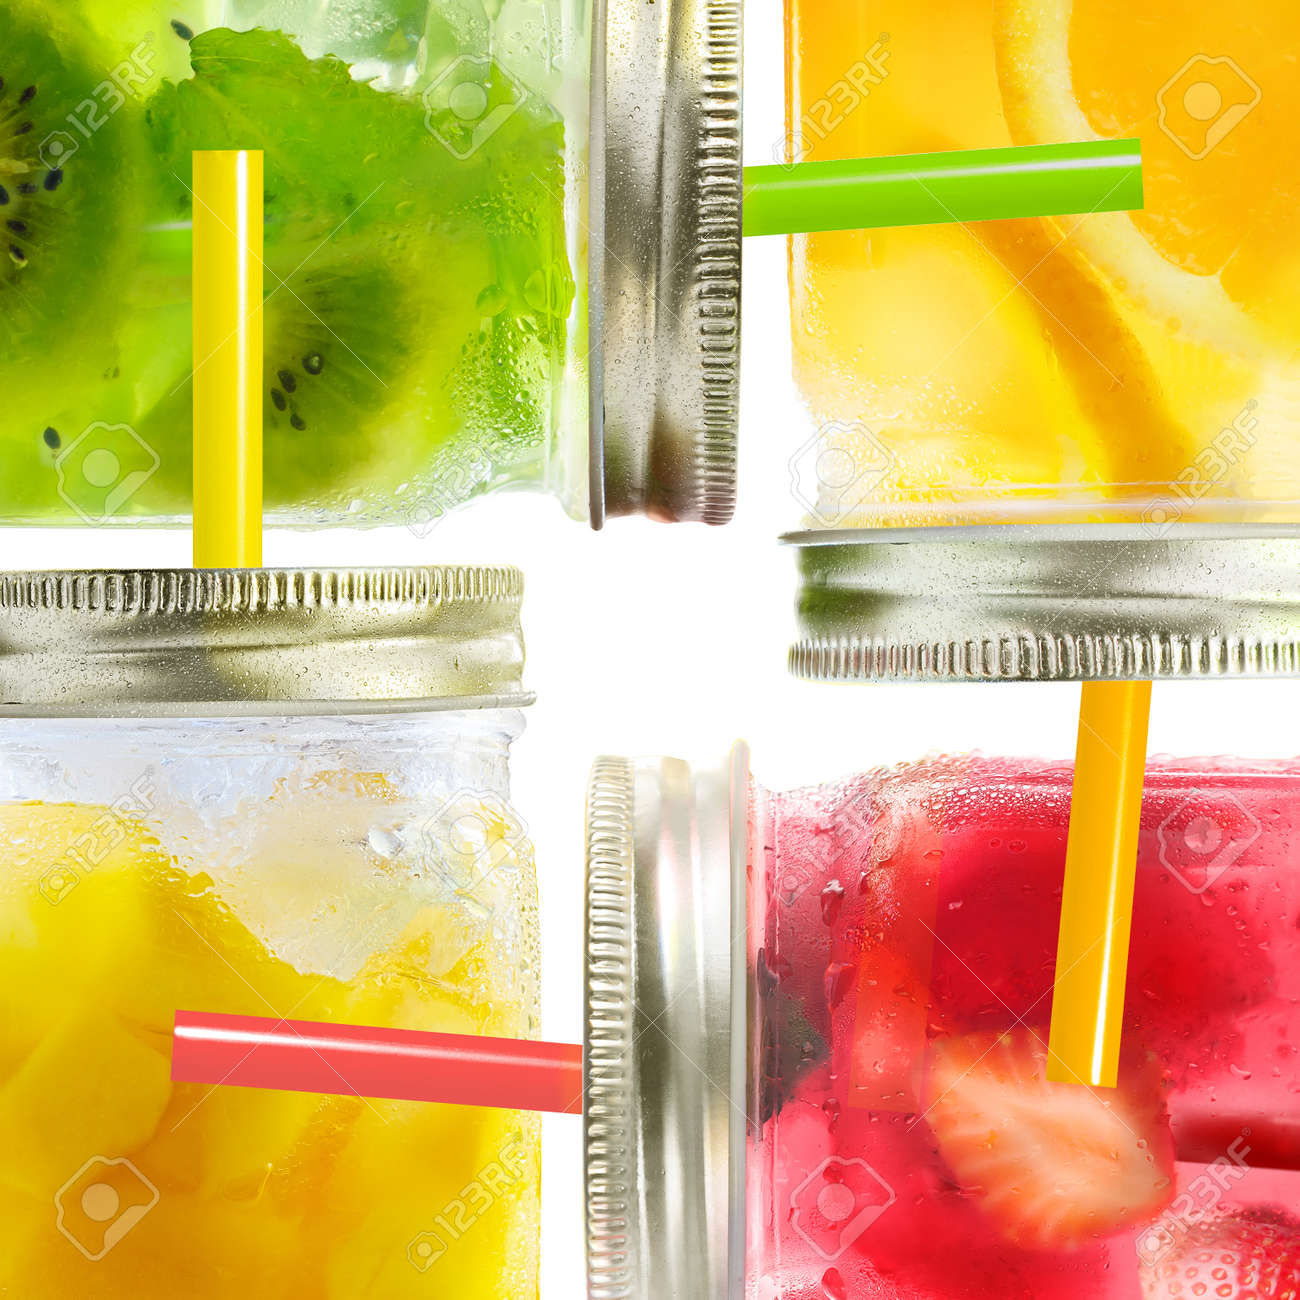 Concept collage of healthy summer cocktails, drinks, lemonade of fresh fruit mix in glass jars with straws - 170721801